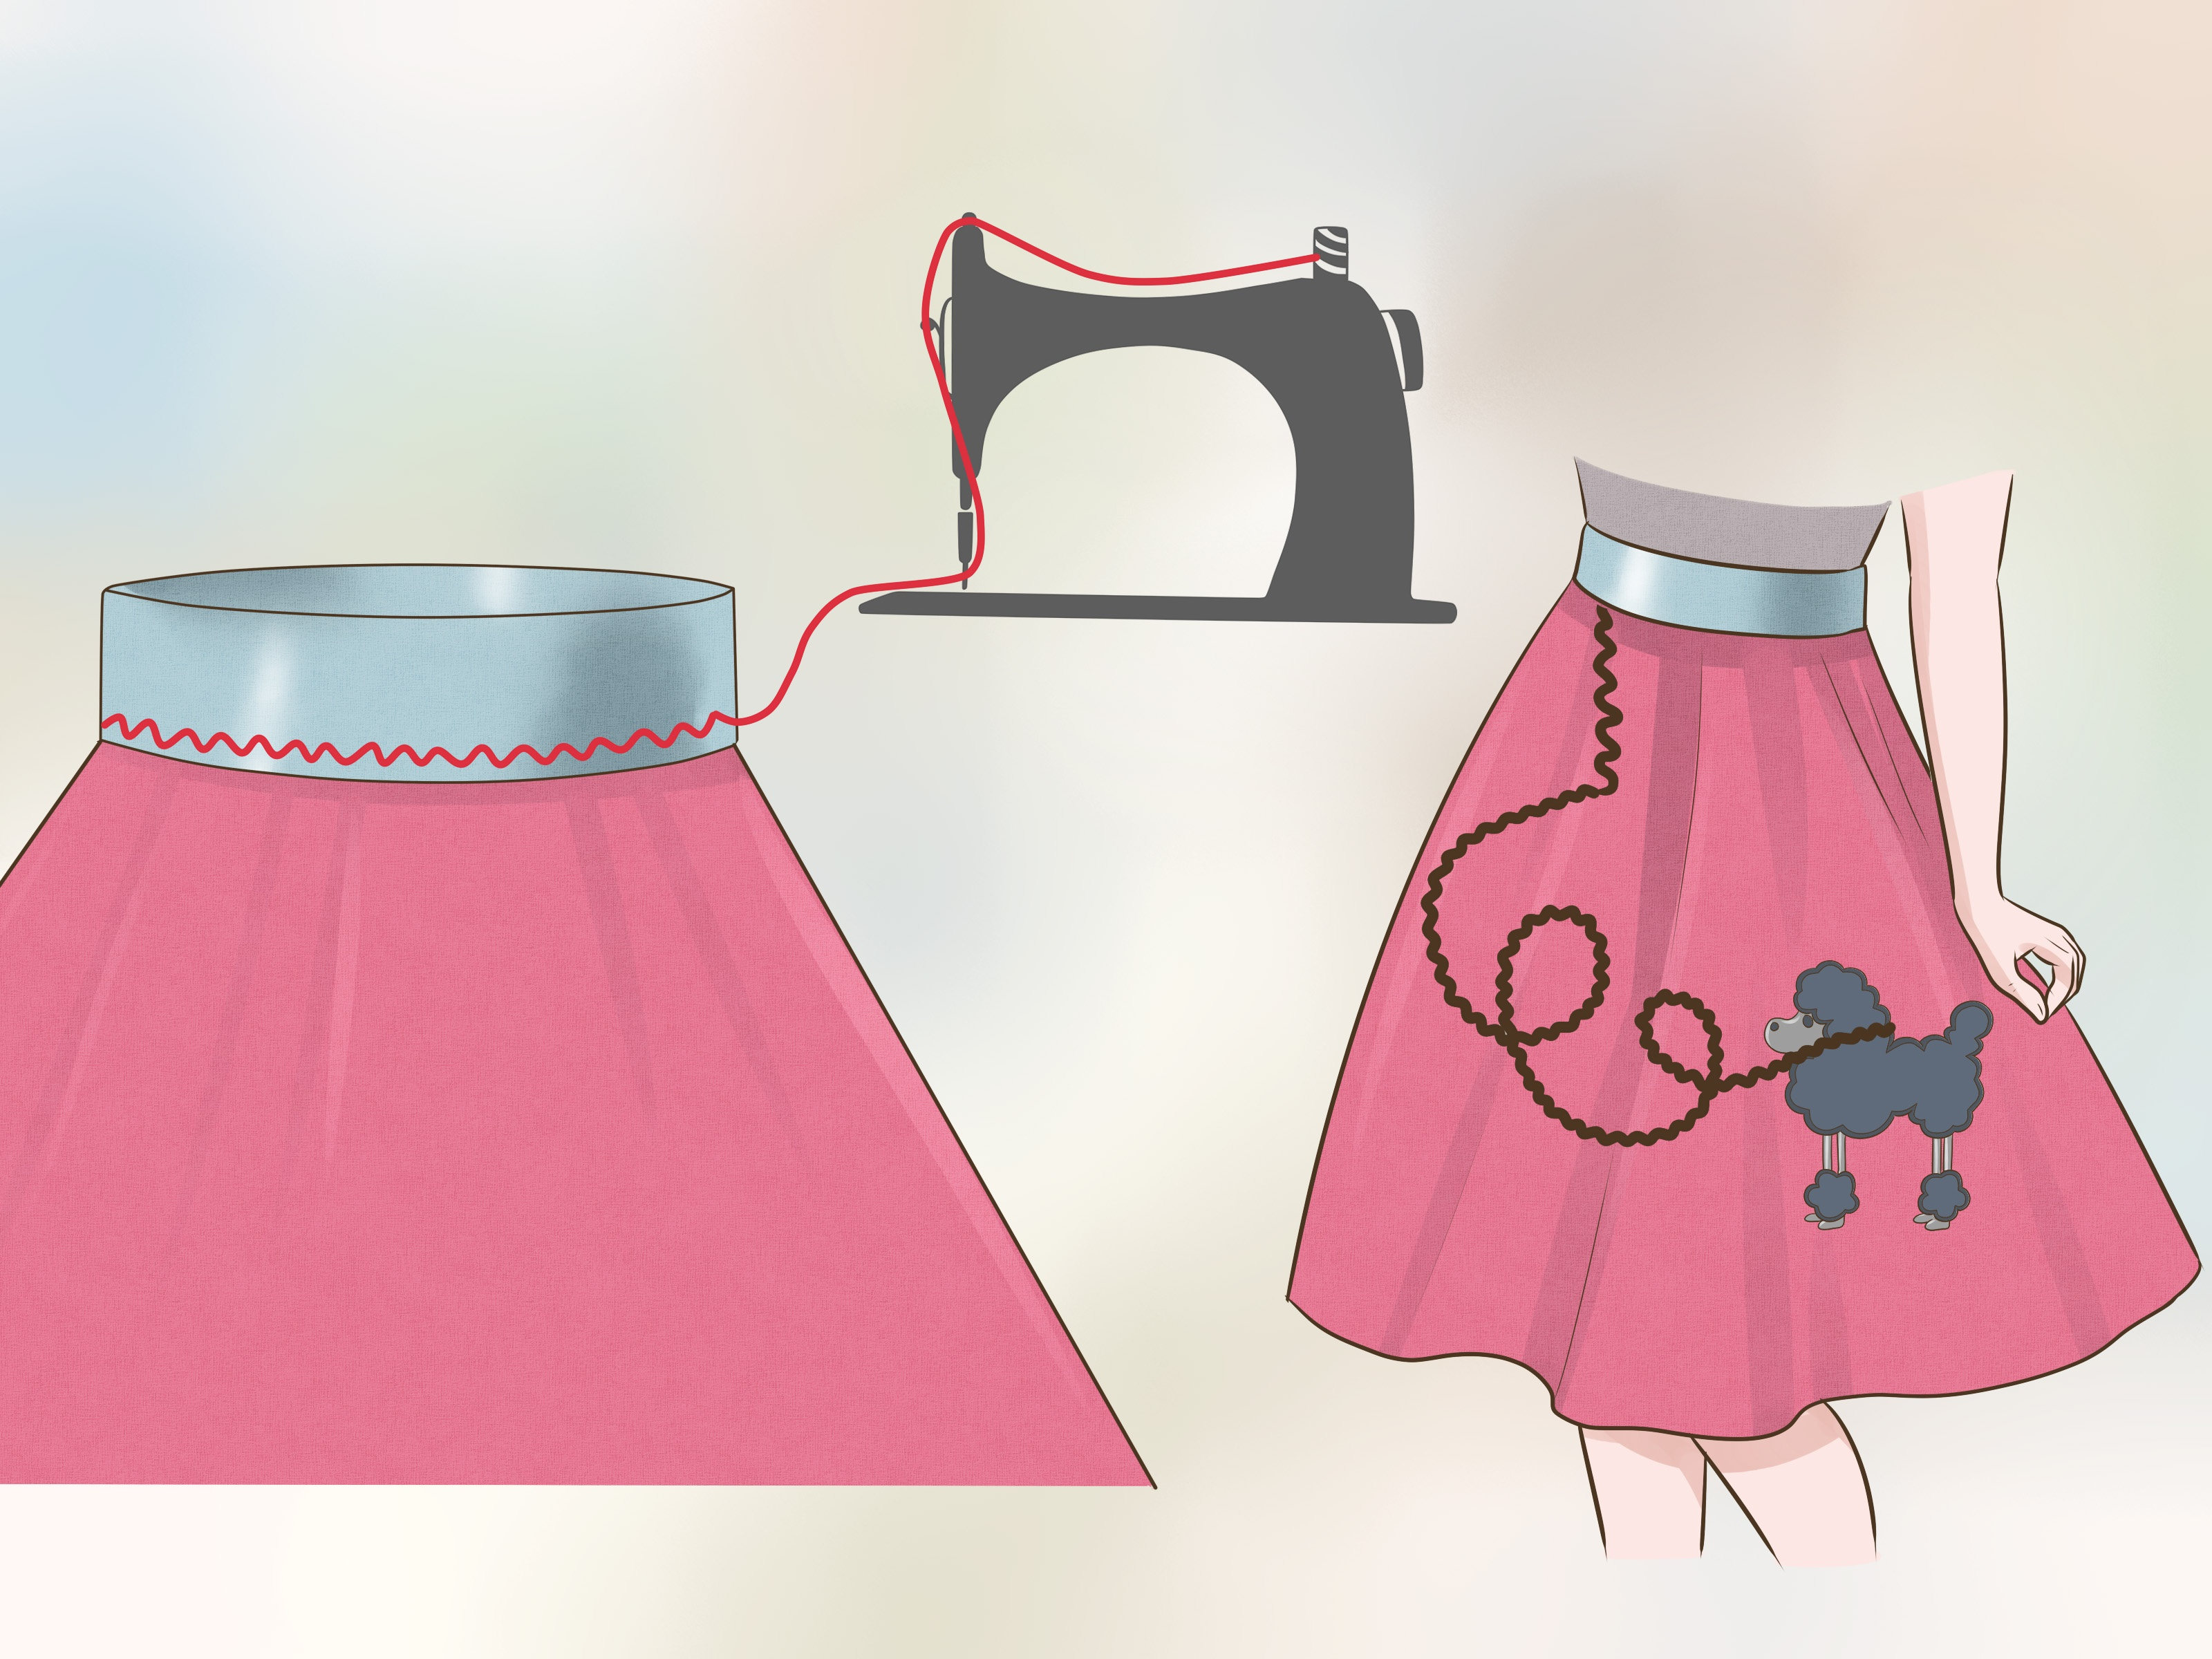 How To Make A Poodle Skirt Without A Pattern And With Minimal Sewing - Free Printable Poodle Template